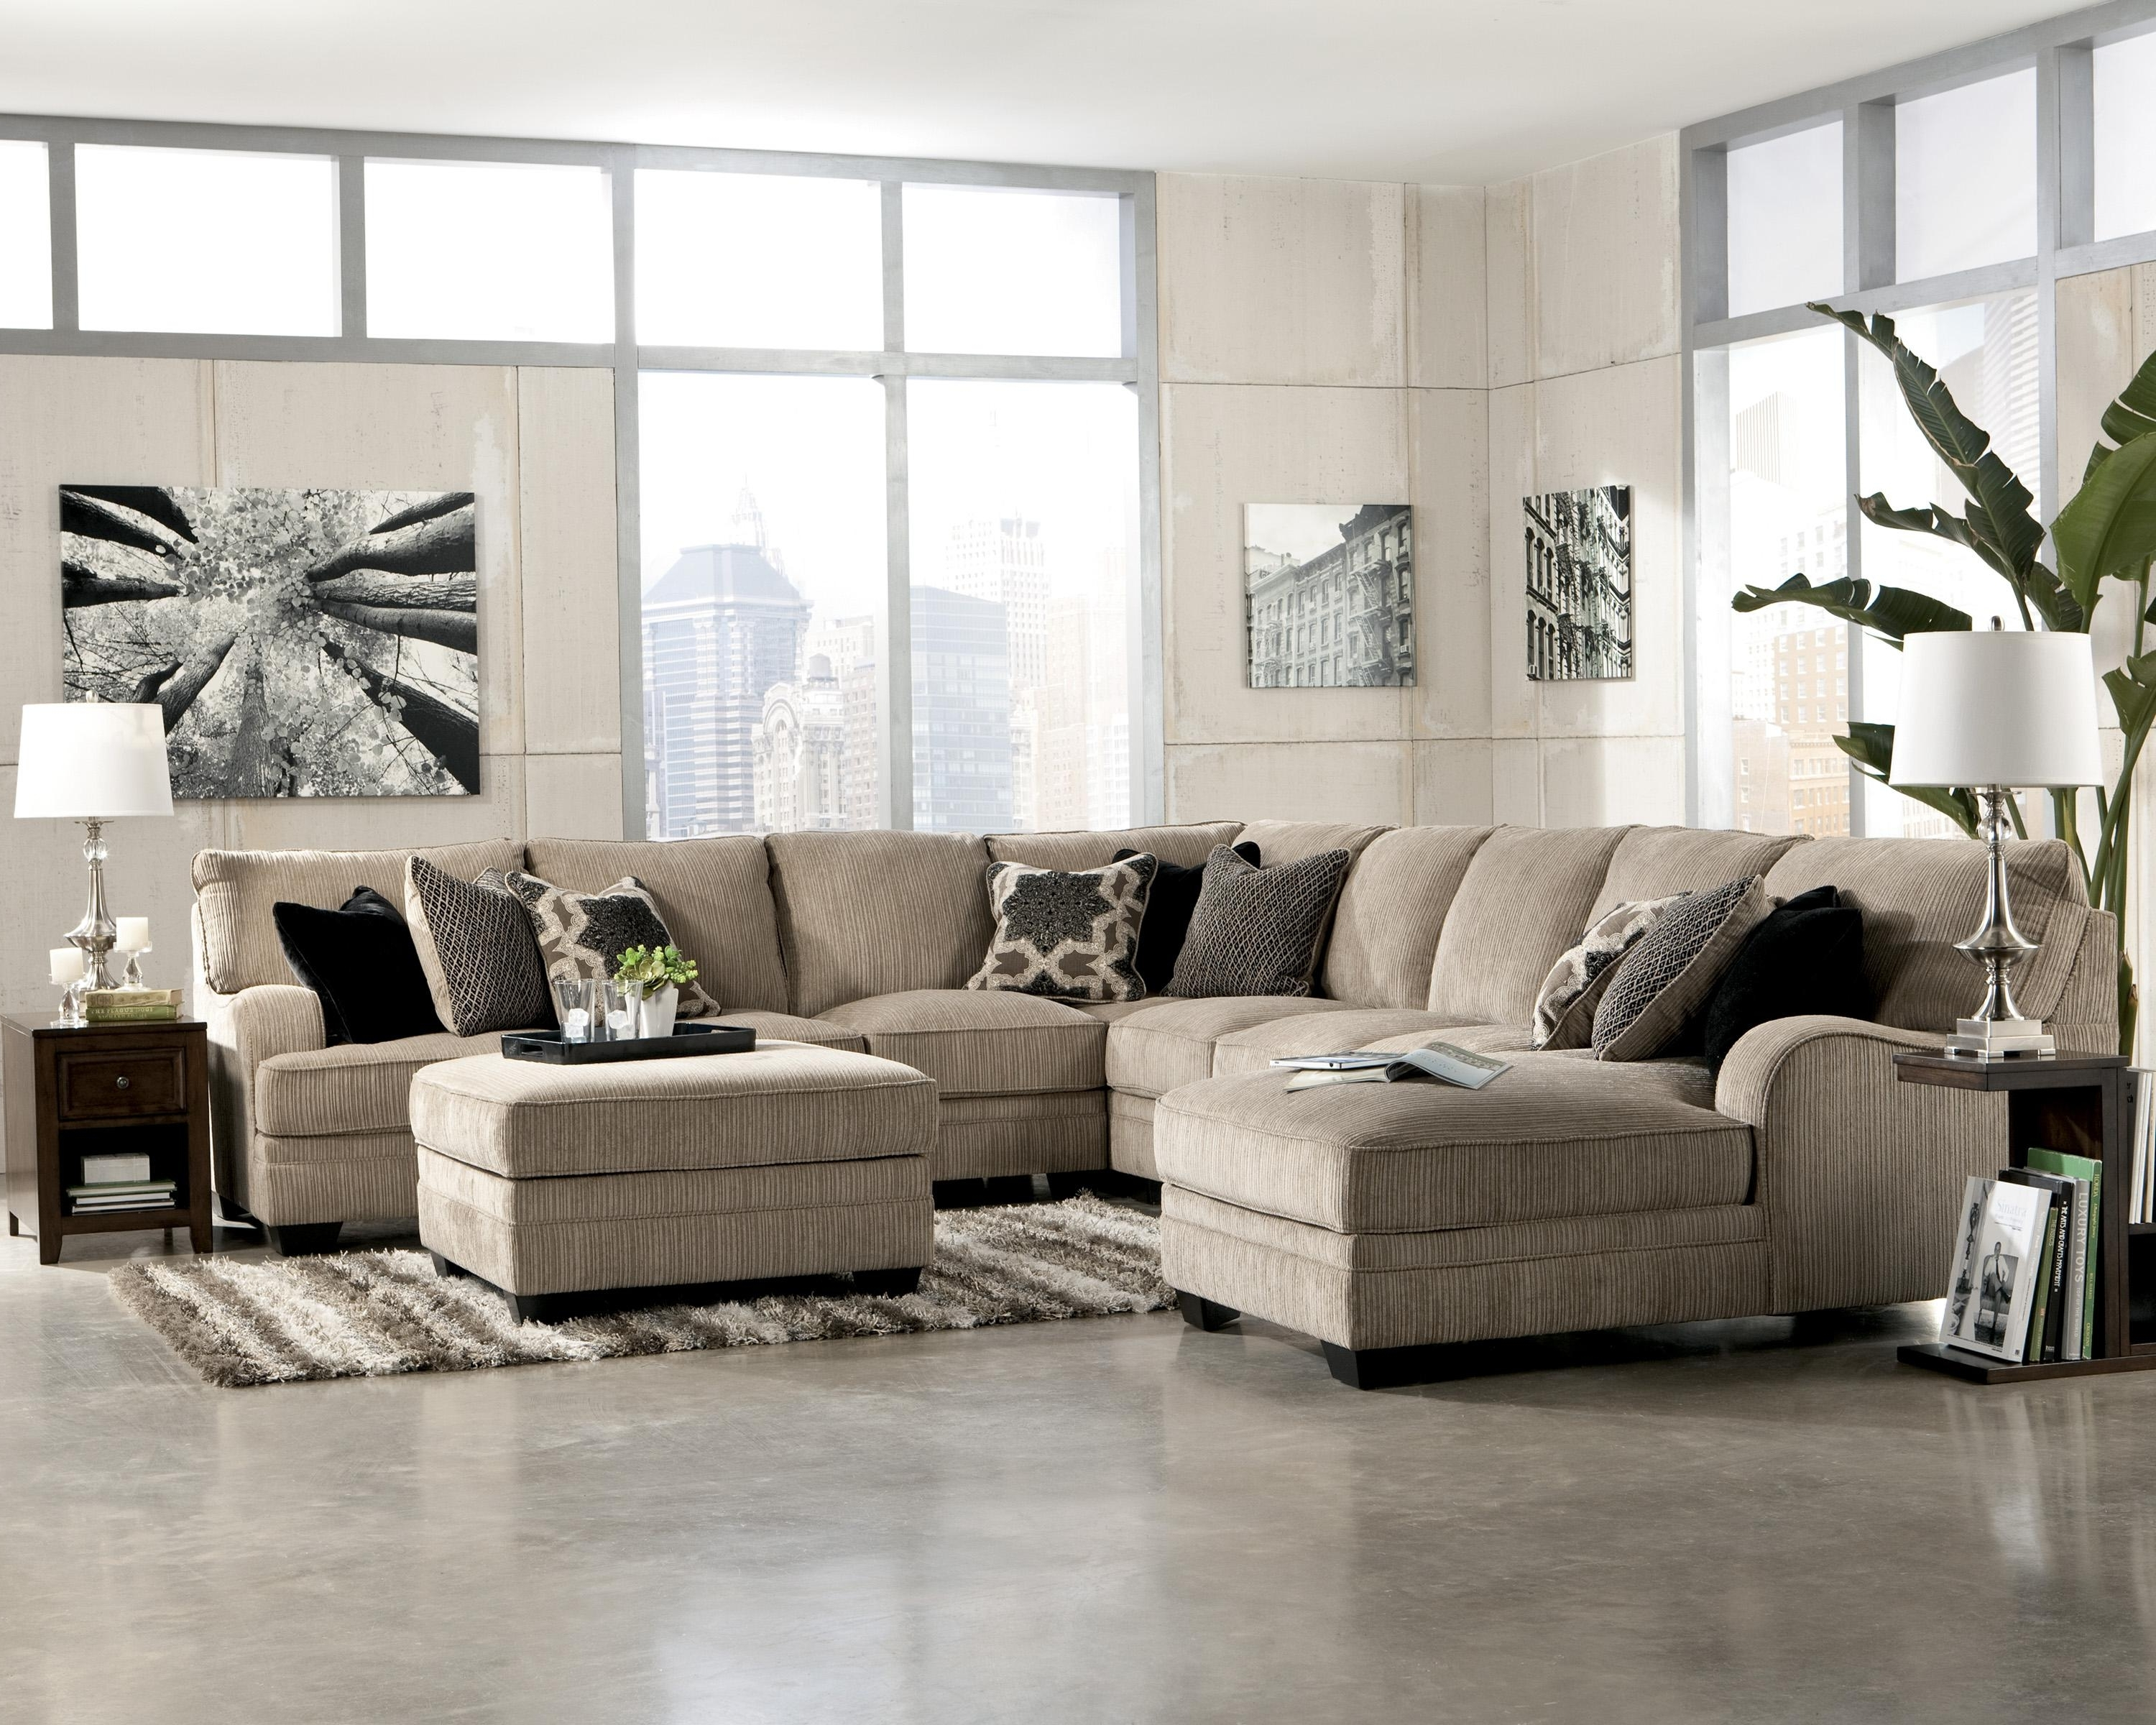 Katisha – Platinum 5 Piece Sectional Sofa With Left Chaise Regarding Well Known Jackson Ms Sectional Sofas (Gallery 3 of 20)